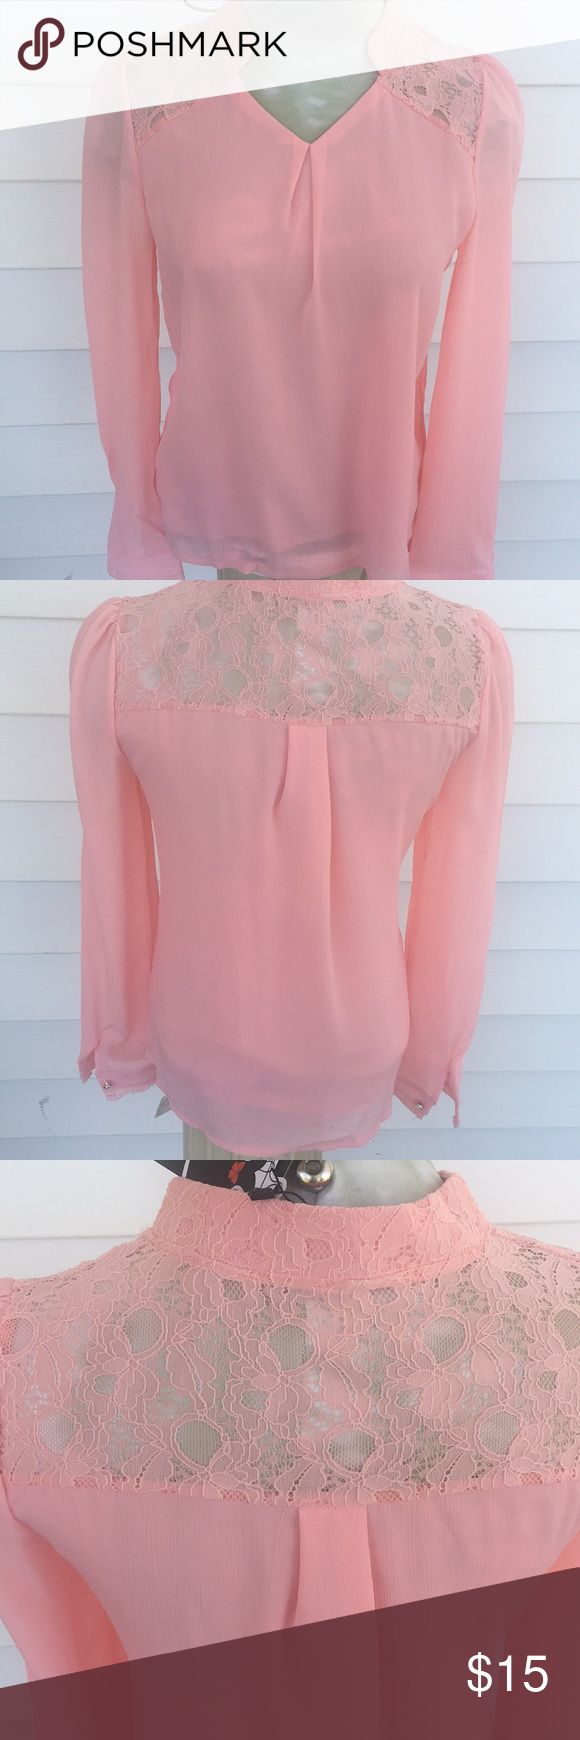 Peachy Lace Blouse This blouse is romantic & lace at it's finest. Notice the delicate lace at the sleeve and pearl and stone button. Smile Fish Tops Blouses